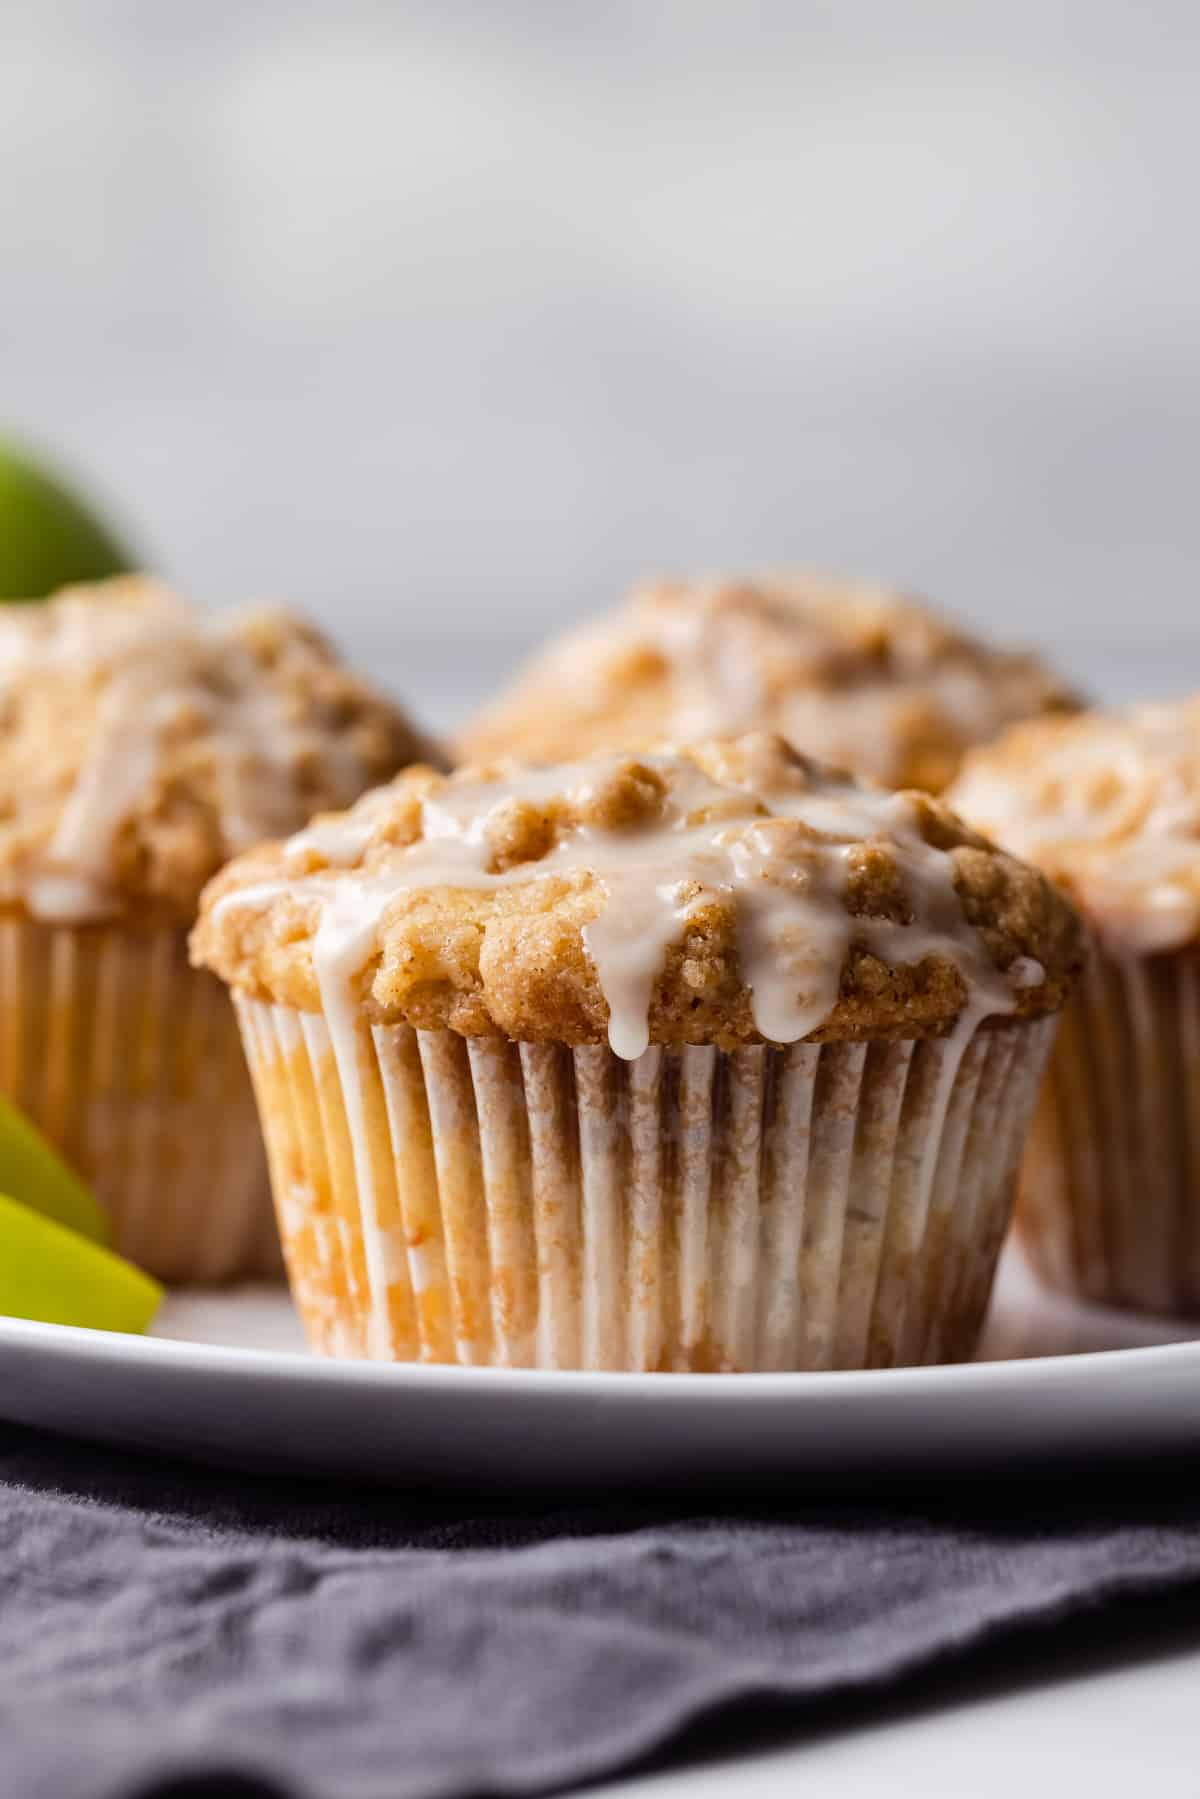 Apple streusel muffins on a plate